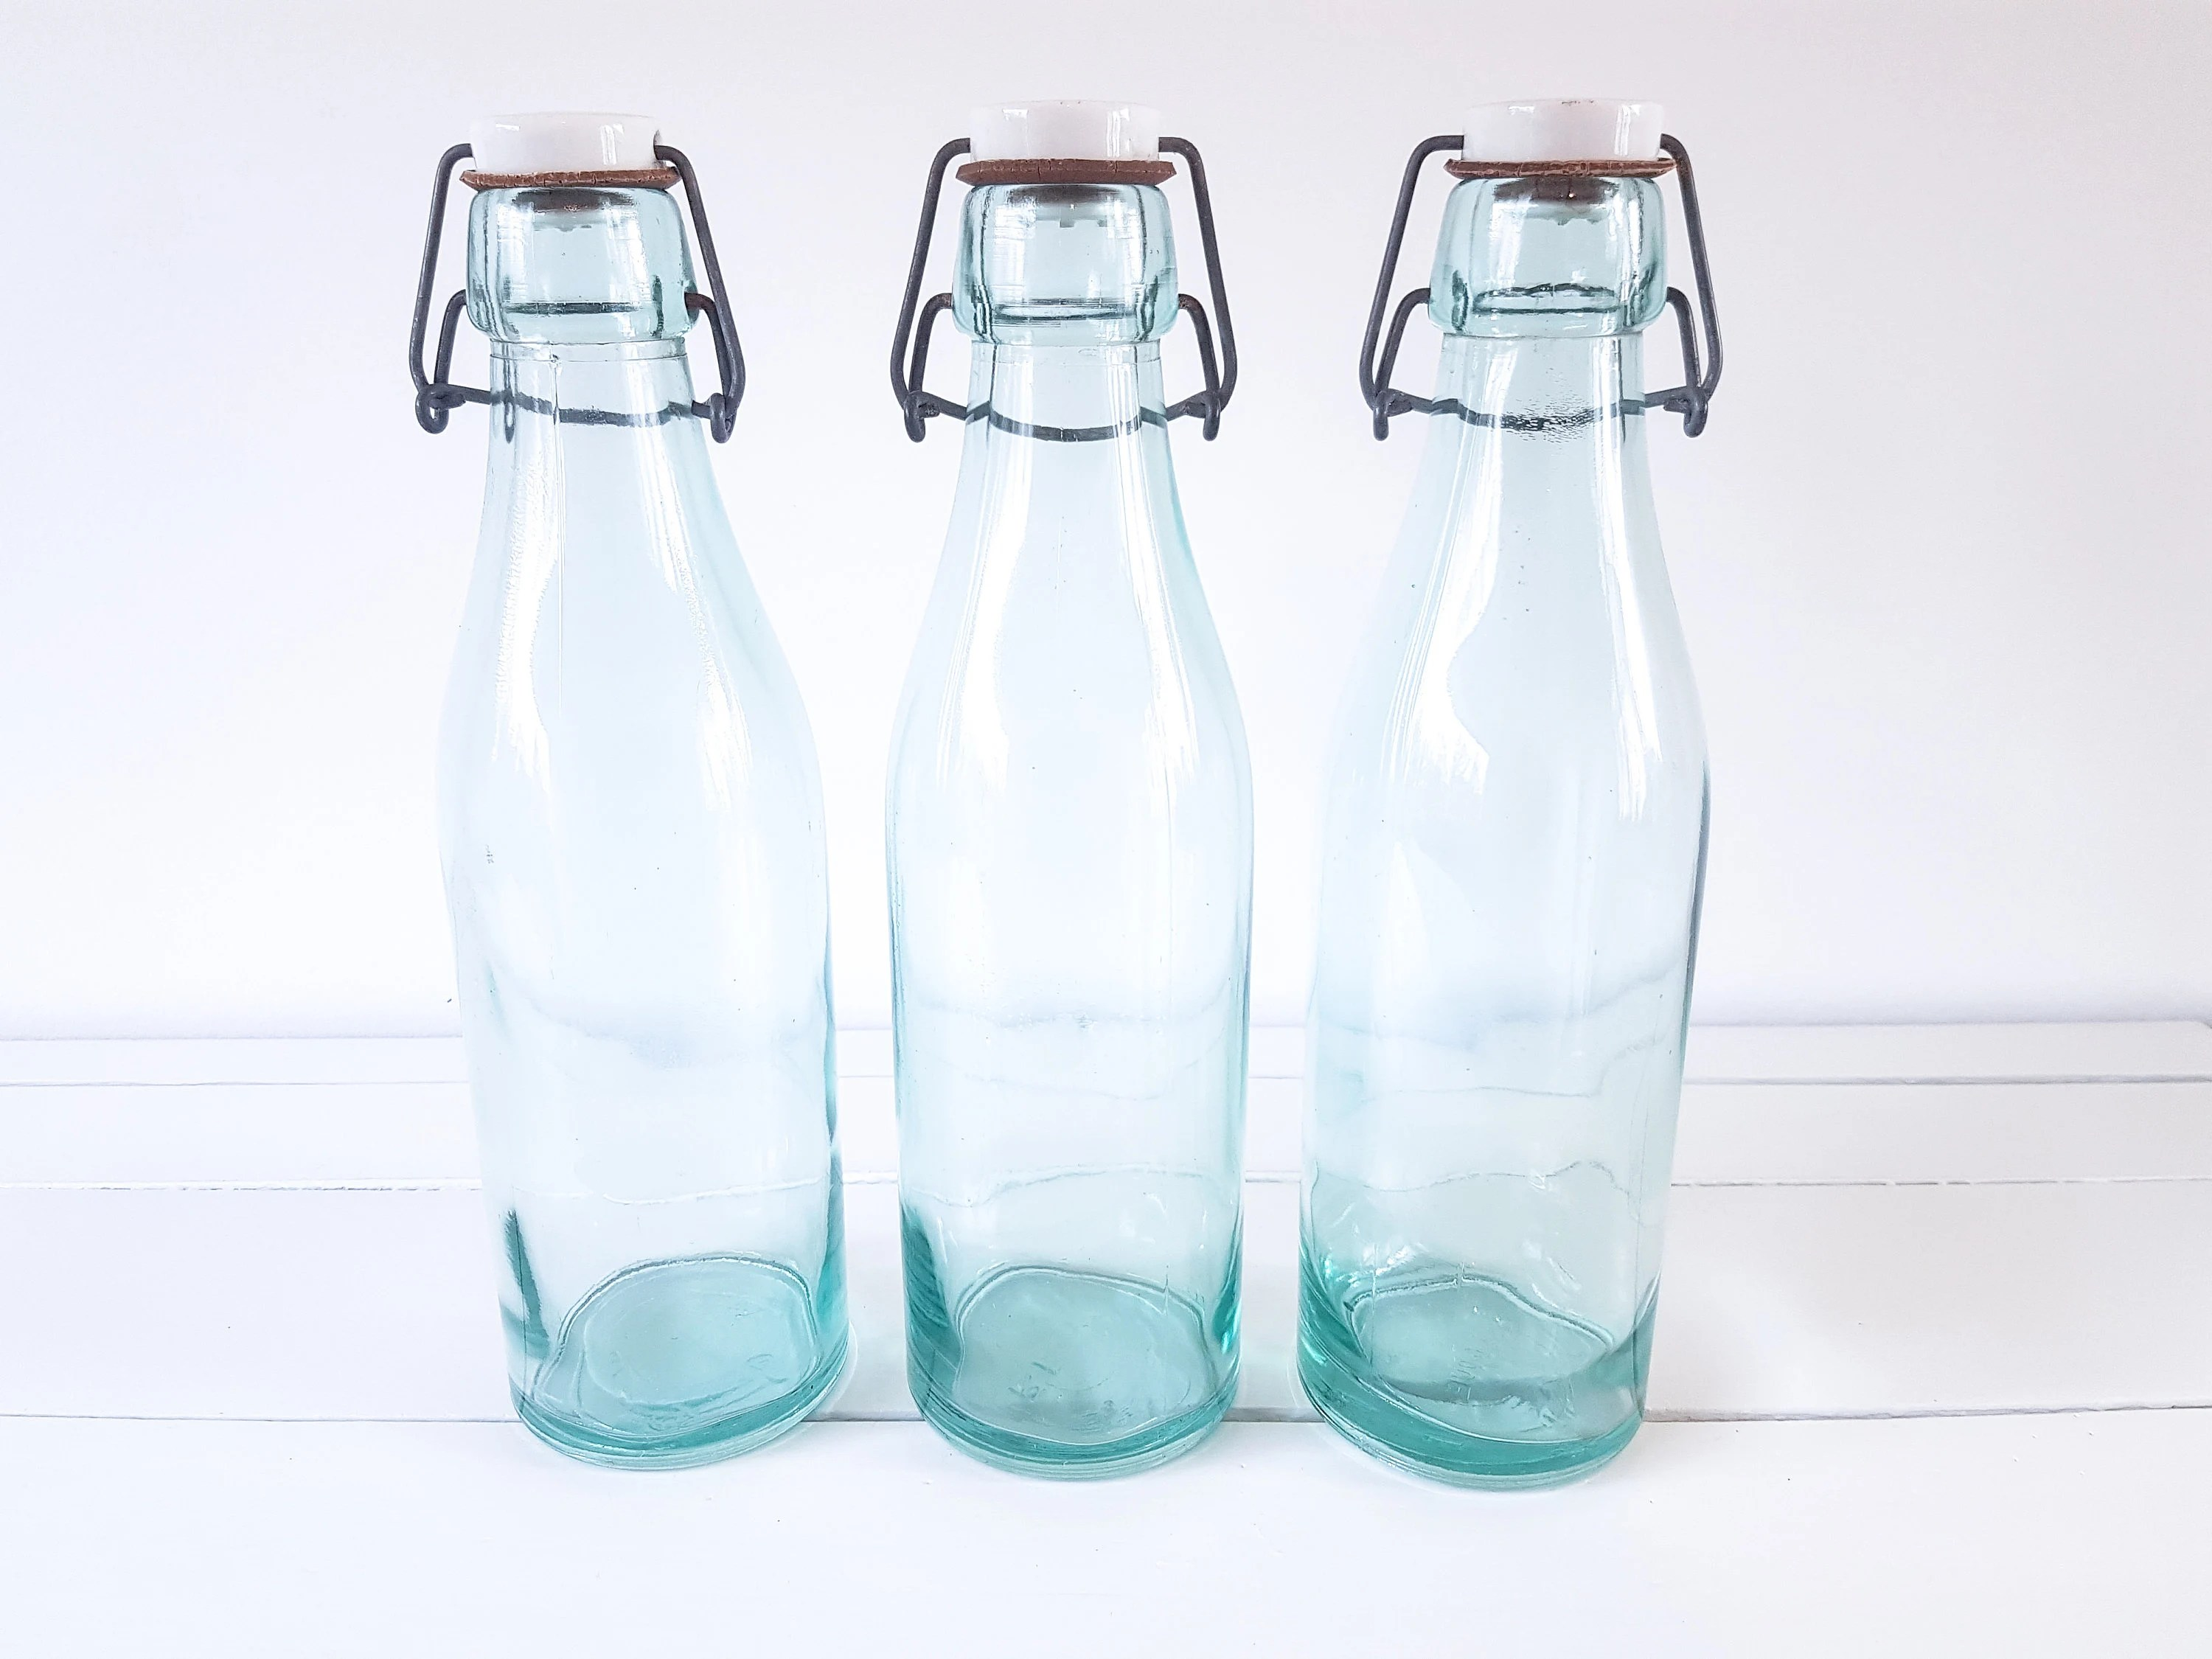 Milk Bottles For Decoration Old Glass Milk Bottle With Bracket And Porcelain Cap Vintage Aqua